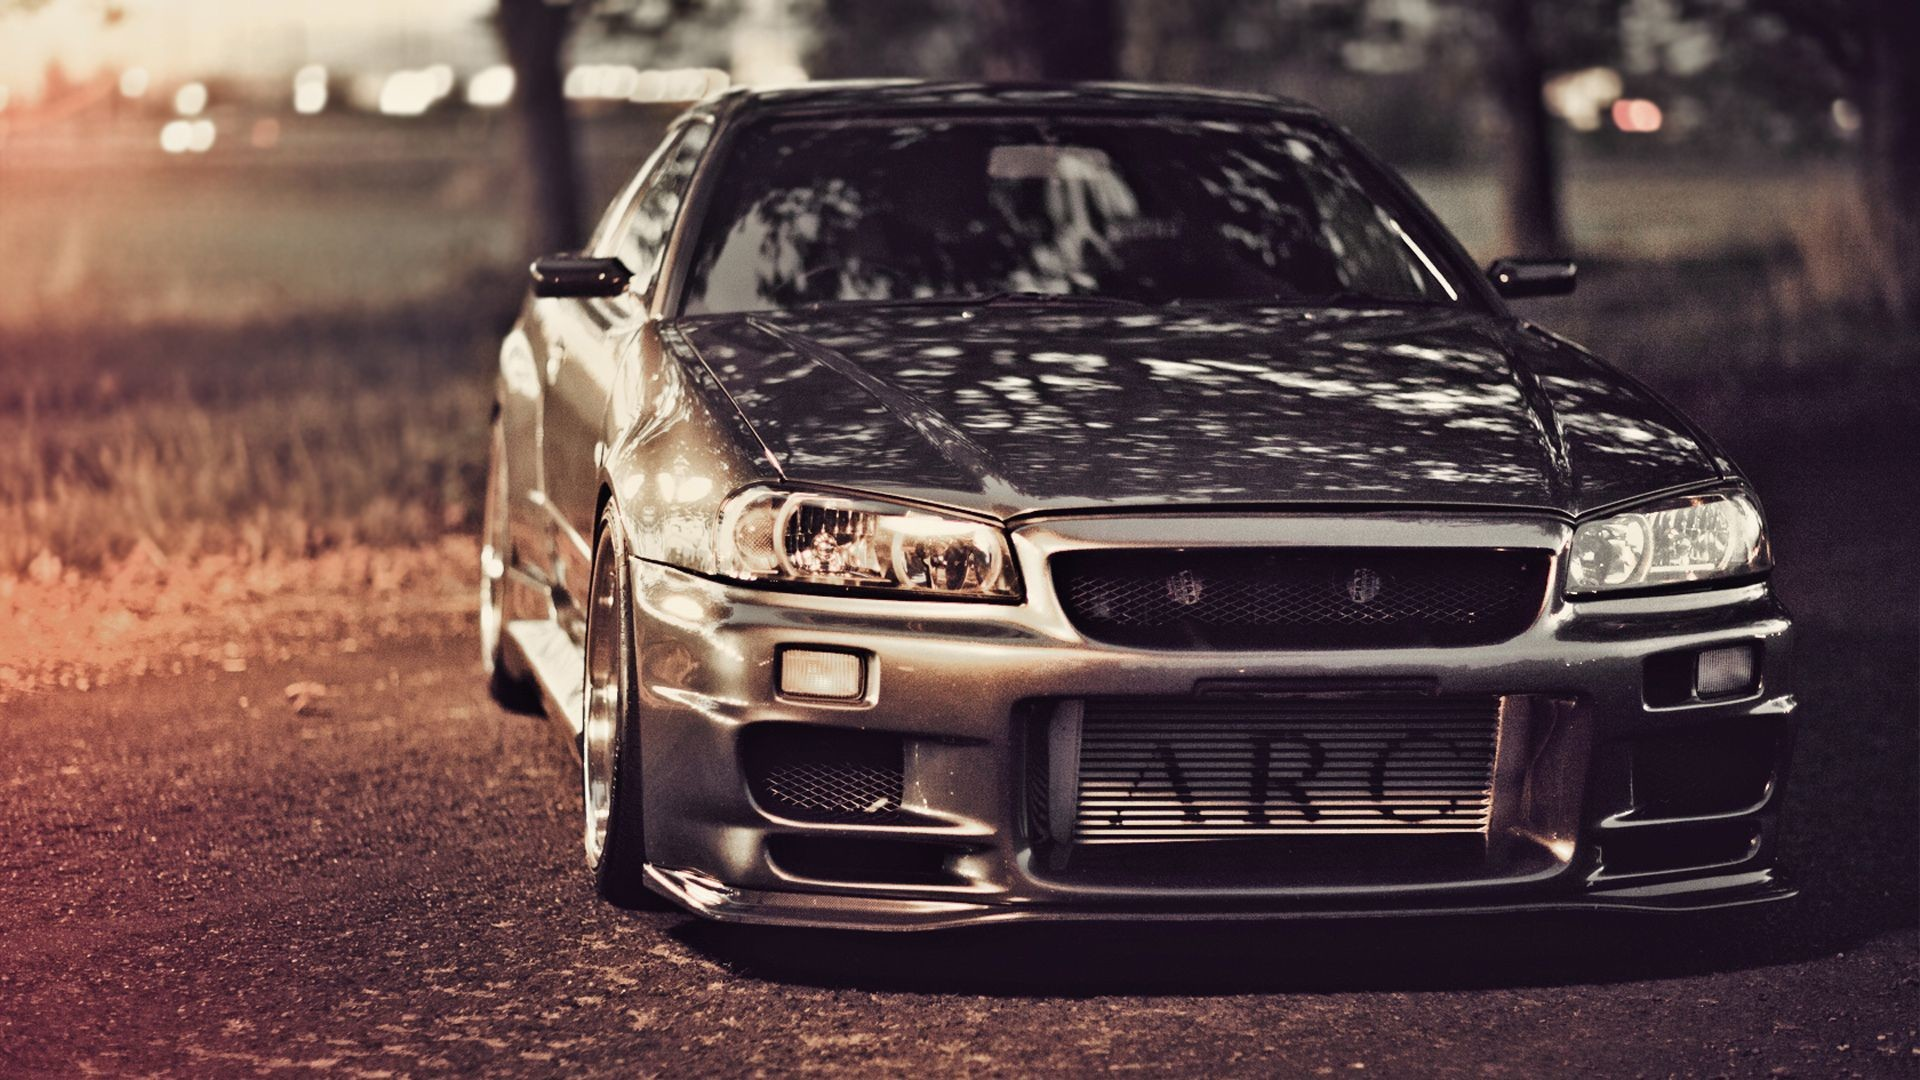 Res: 1920x1080, Nissan Skyline GTR R34 Wallpapers - Wallpaper Cave